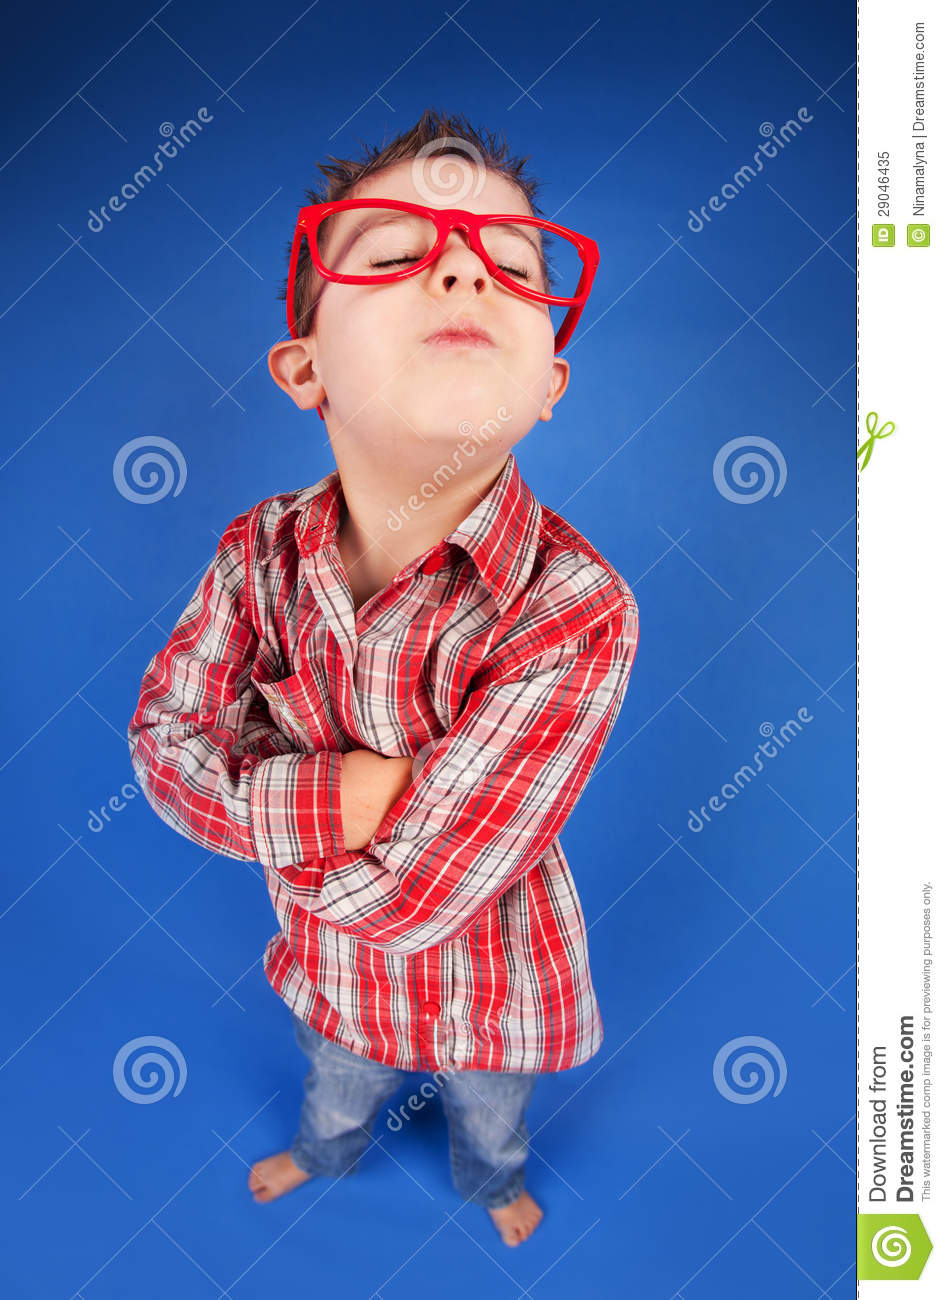 Cool boy royalty free stock photo image 29046435 - Cool boys photo ...